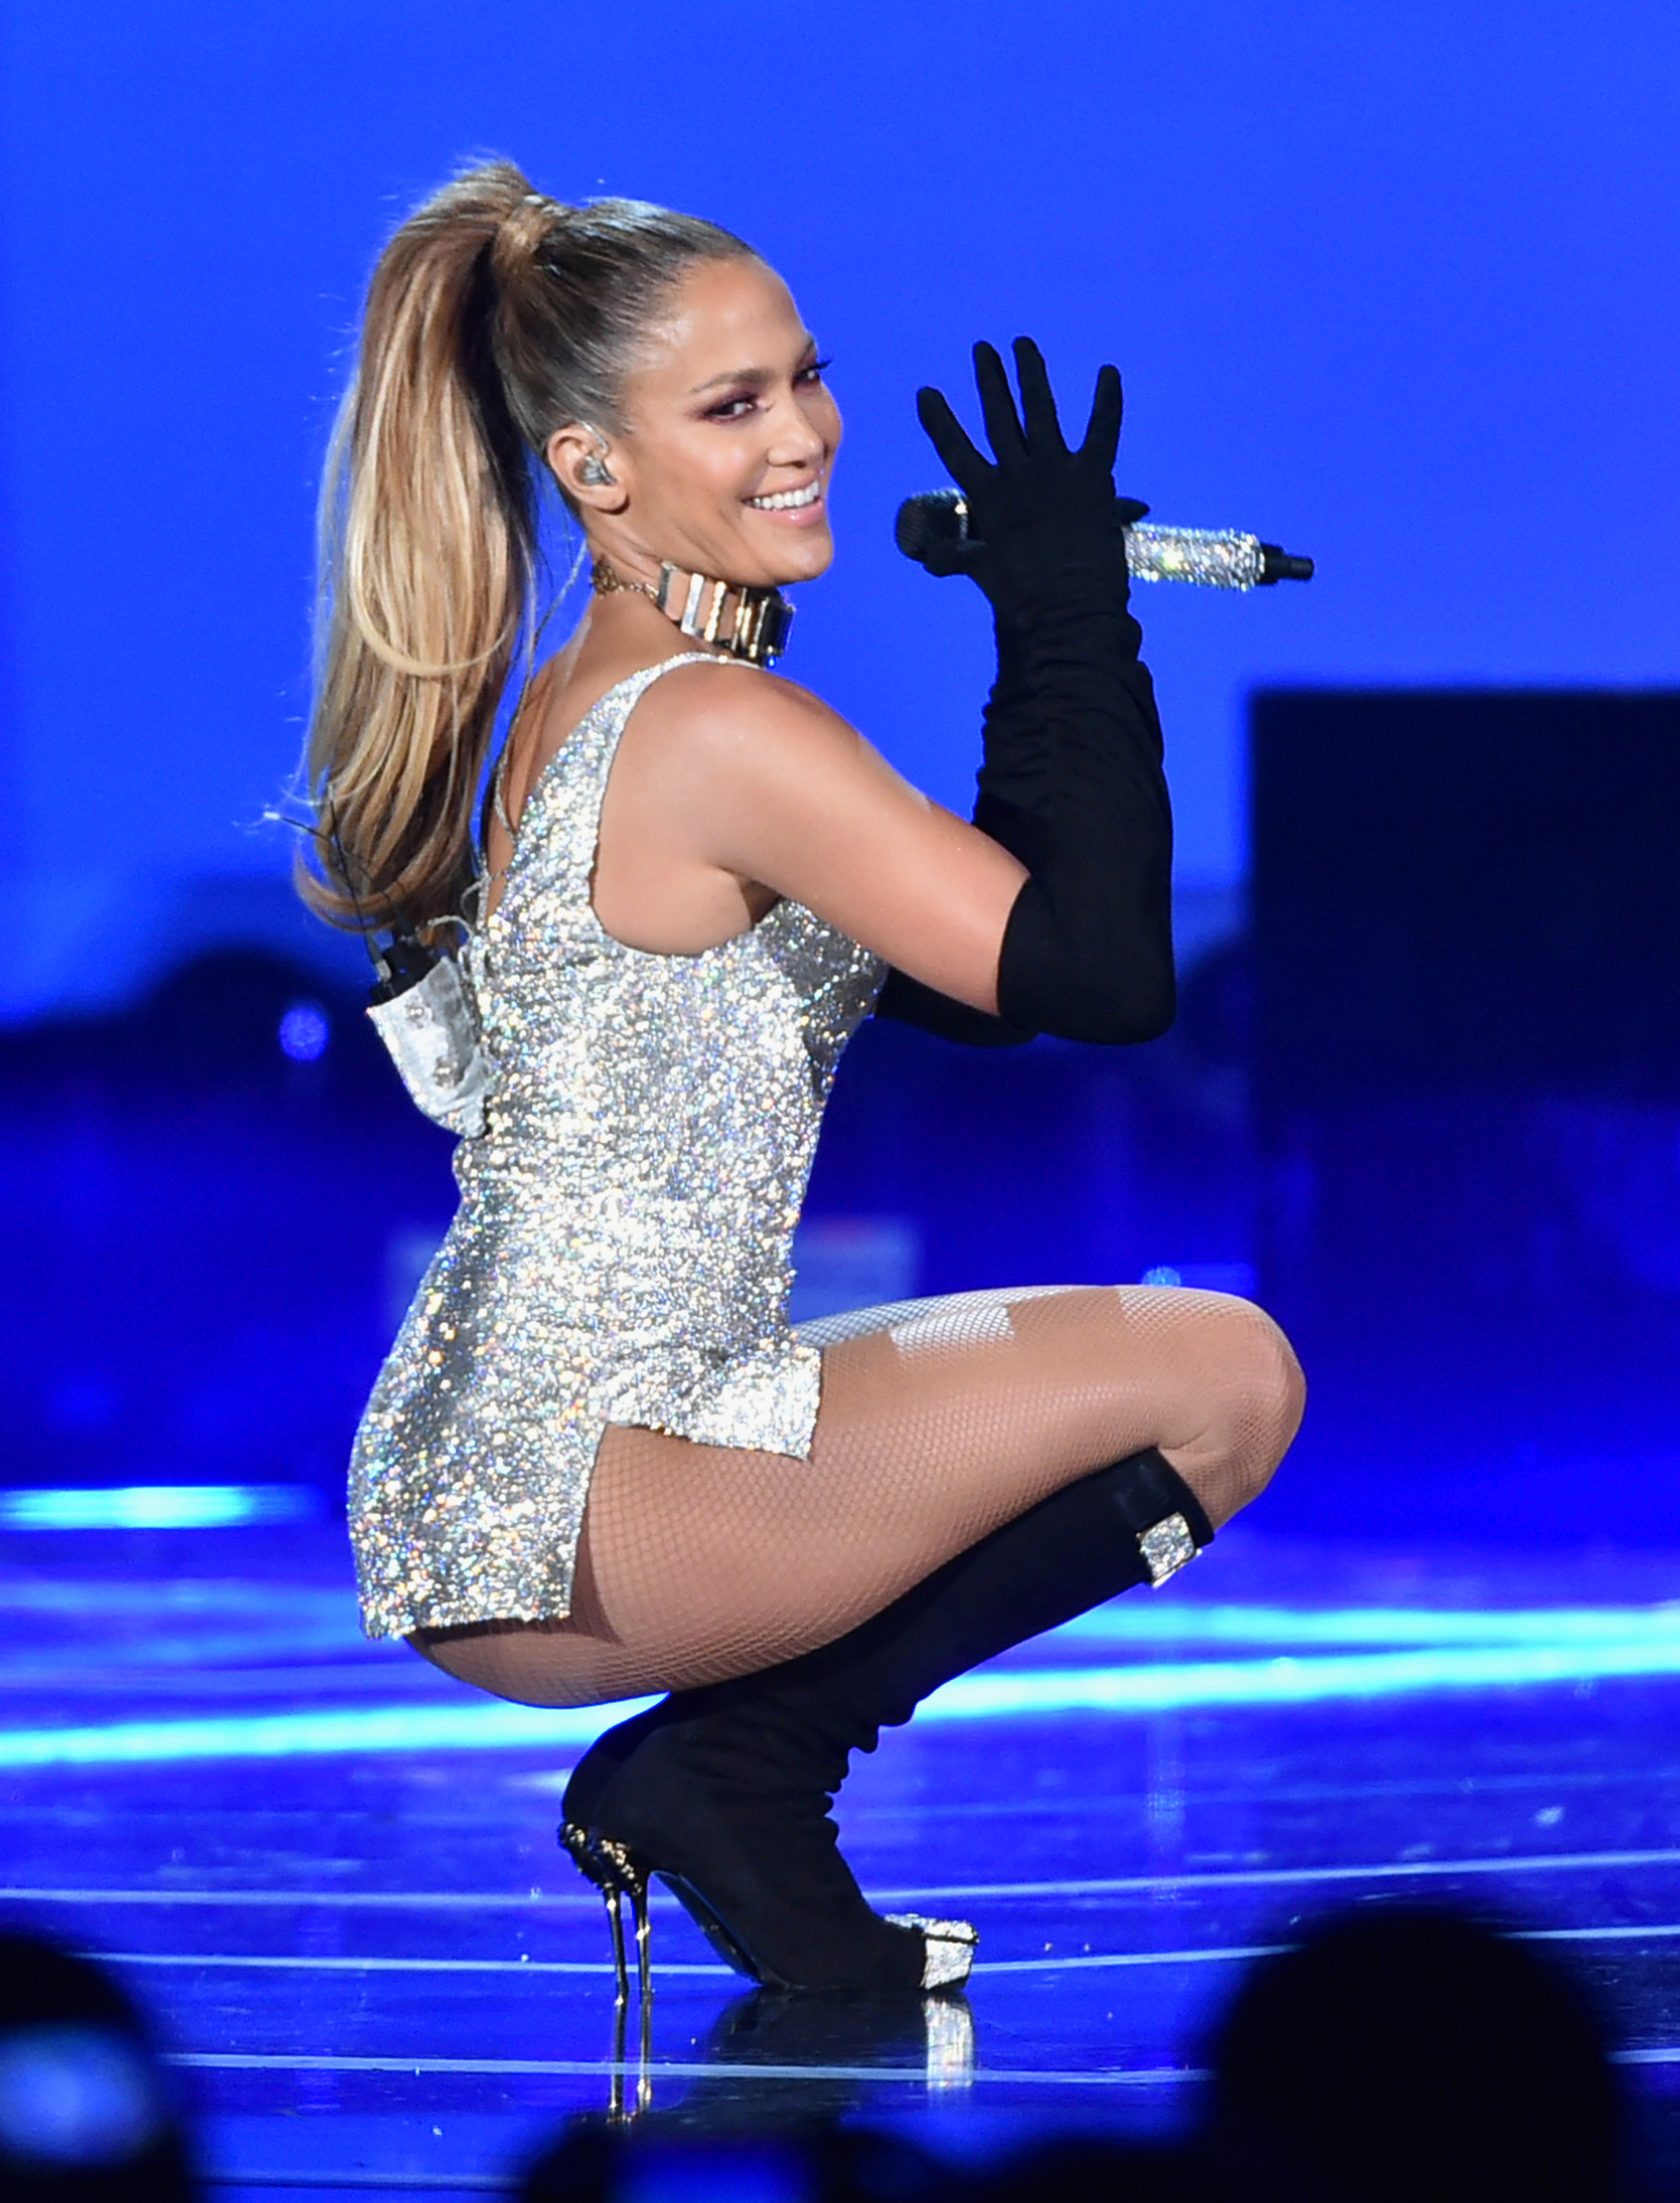 Jennifer Lopez performs onstage at Fashion Rocks 2014. (Photo by Theo Wargo/Getty Images for Three Lions Entertainment)